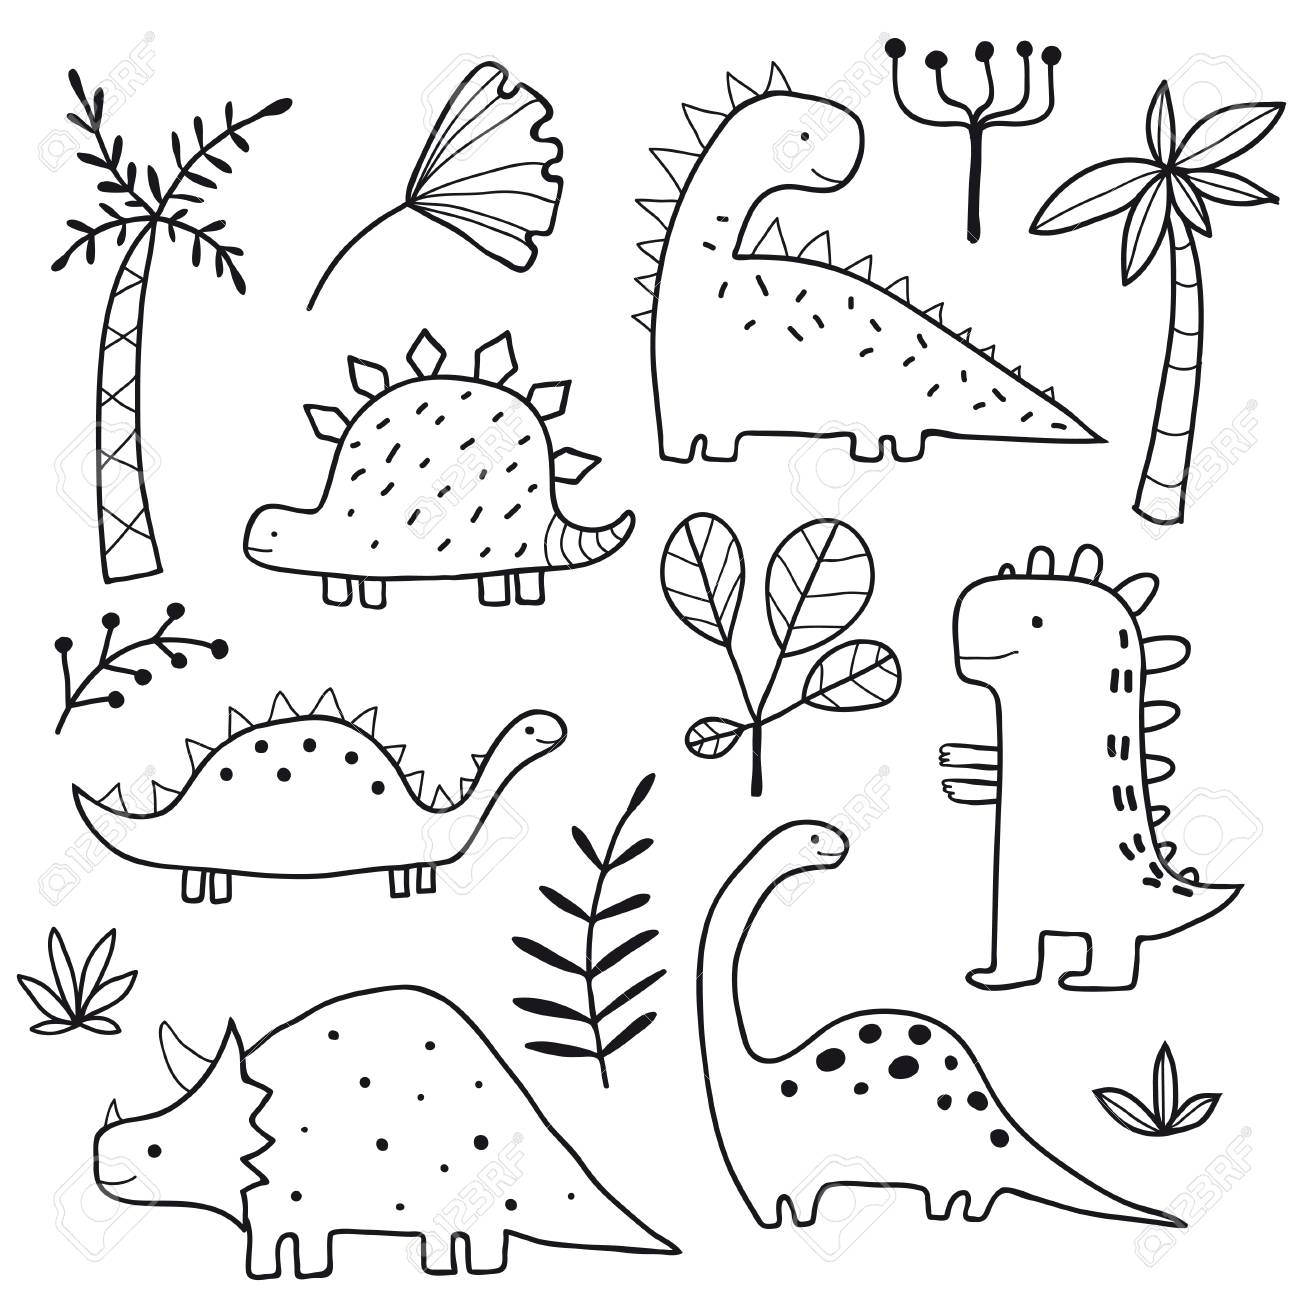 Cute Dinosaurs And Tropic Plants Funny Cartoon Dino Collection